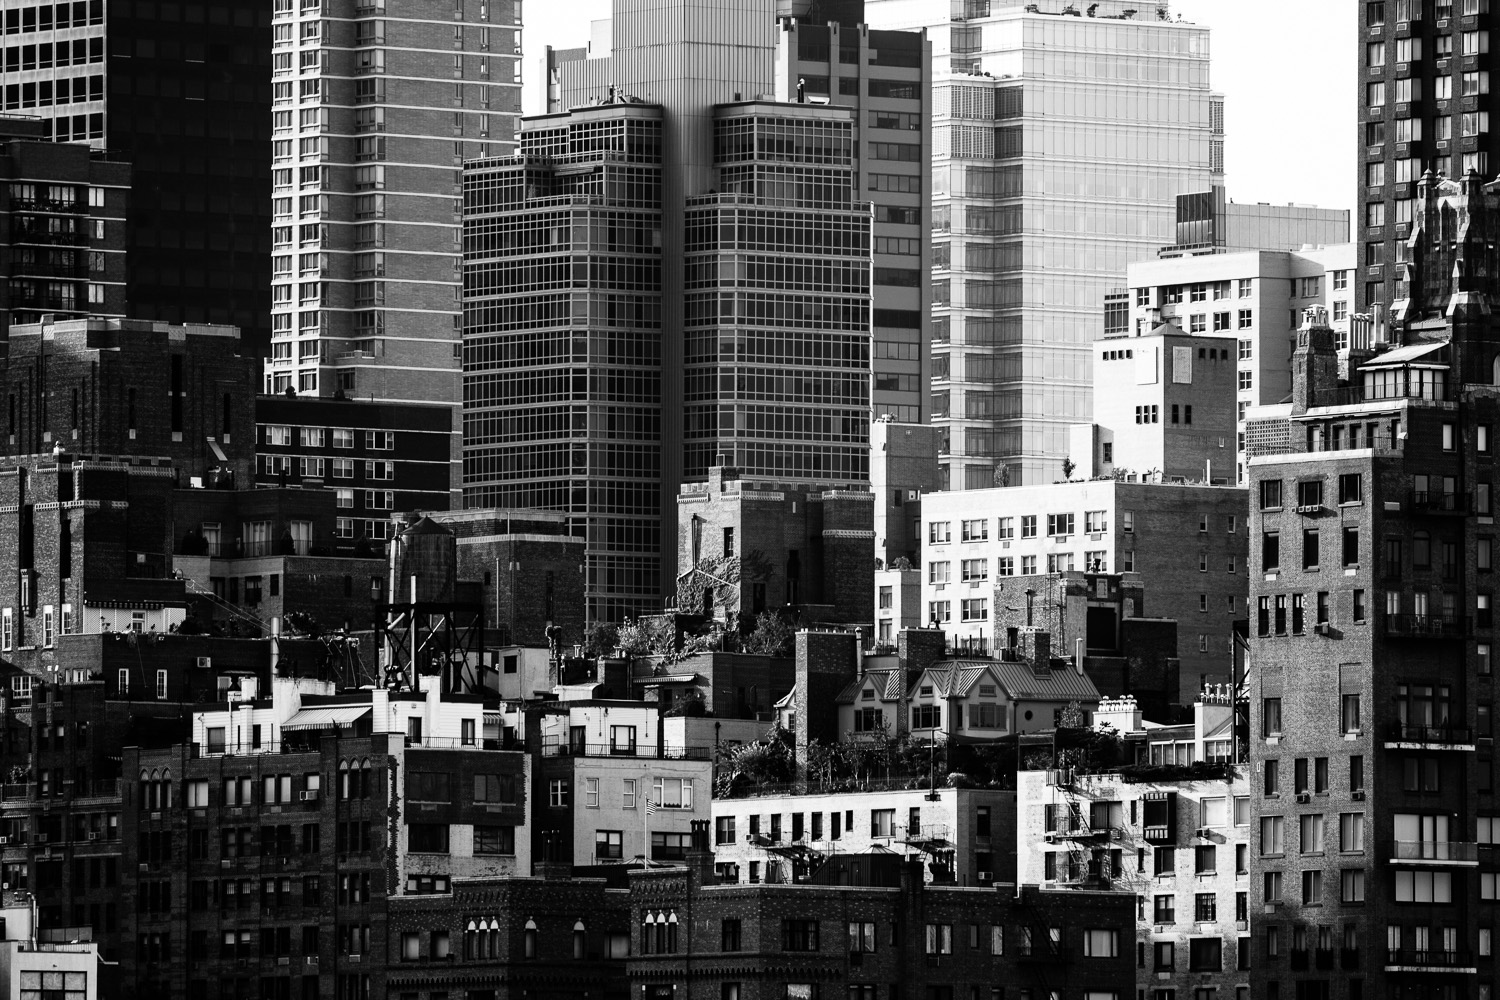 buildings-from-afar-2